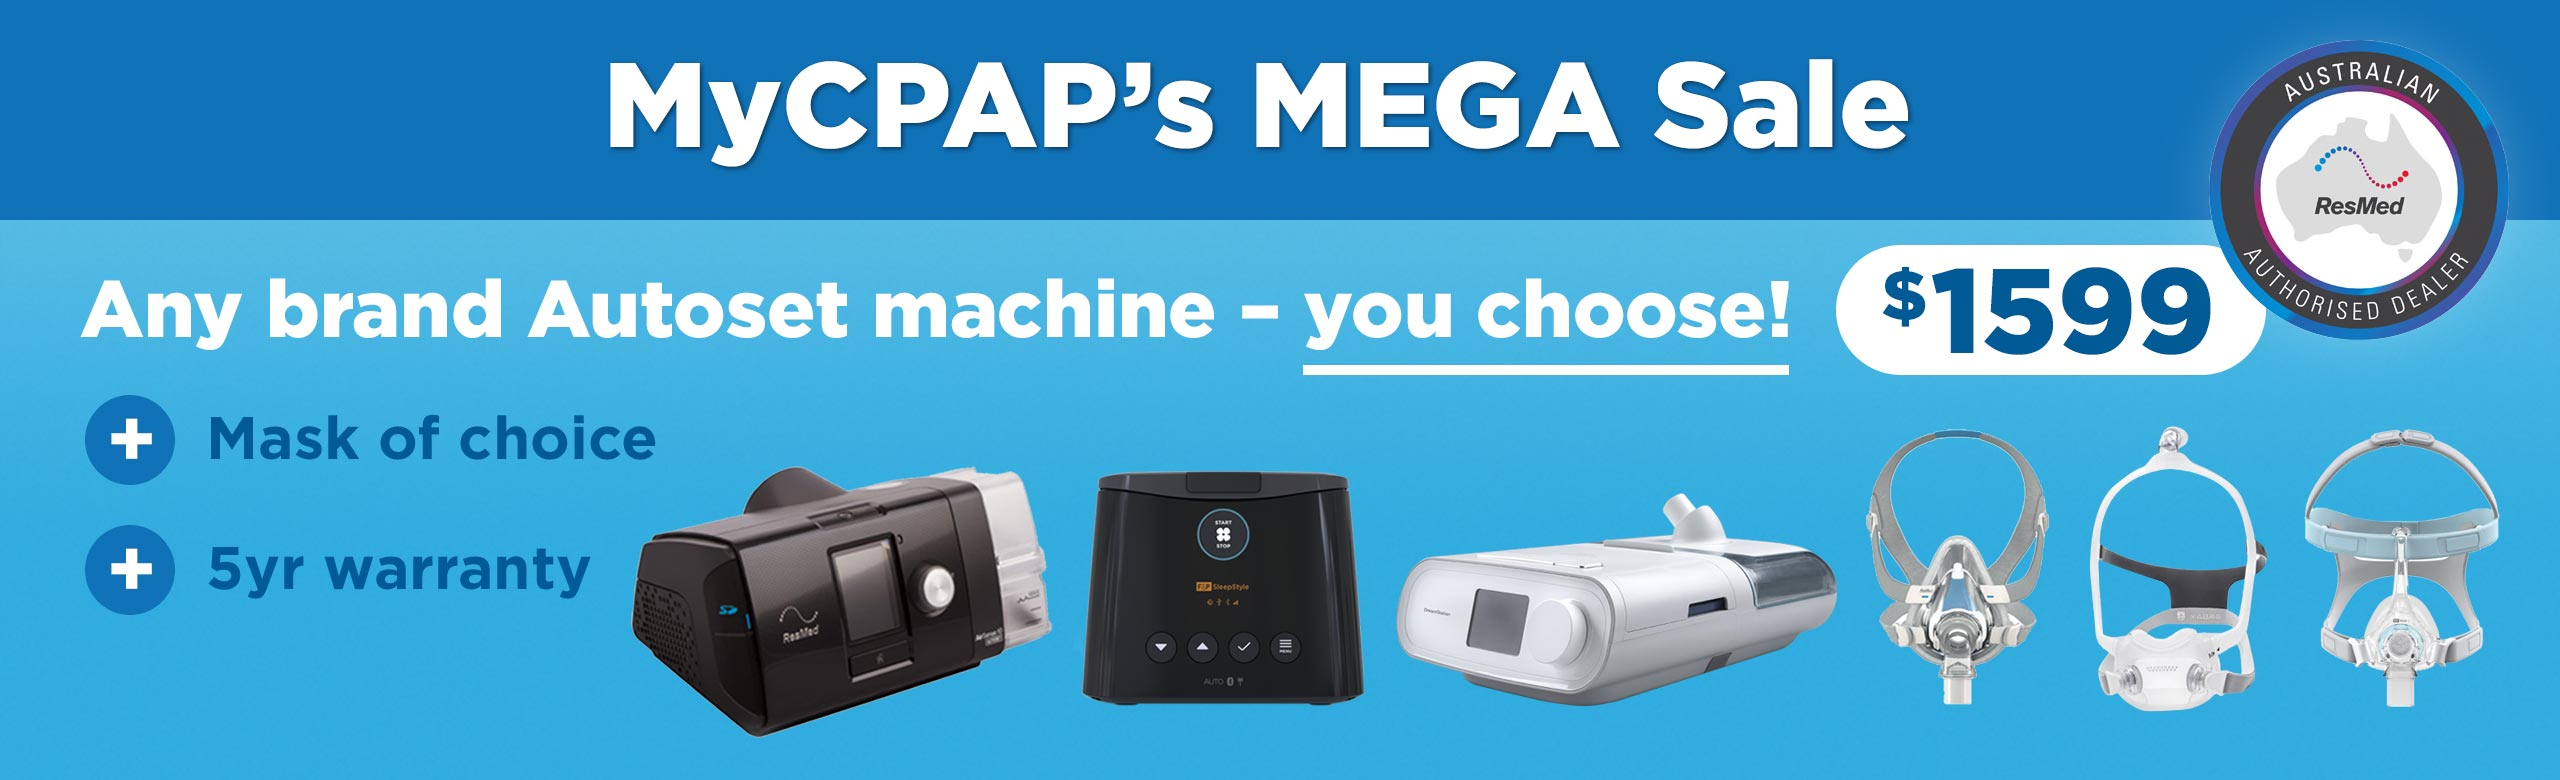 CPAP Machines For Sale in Australia | Buy CPAP Supplies | MyCPAP